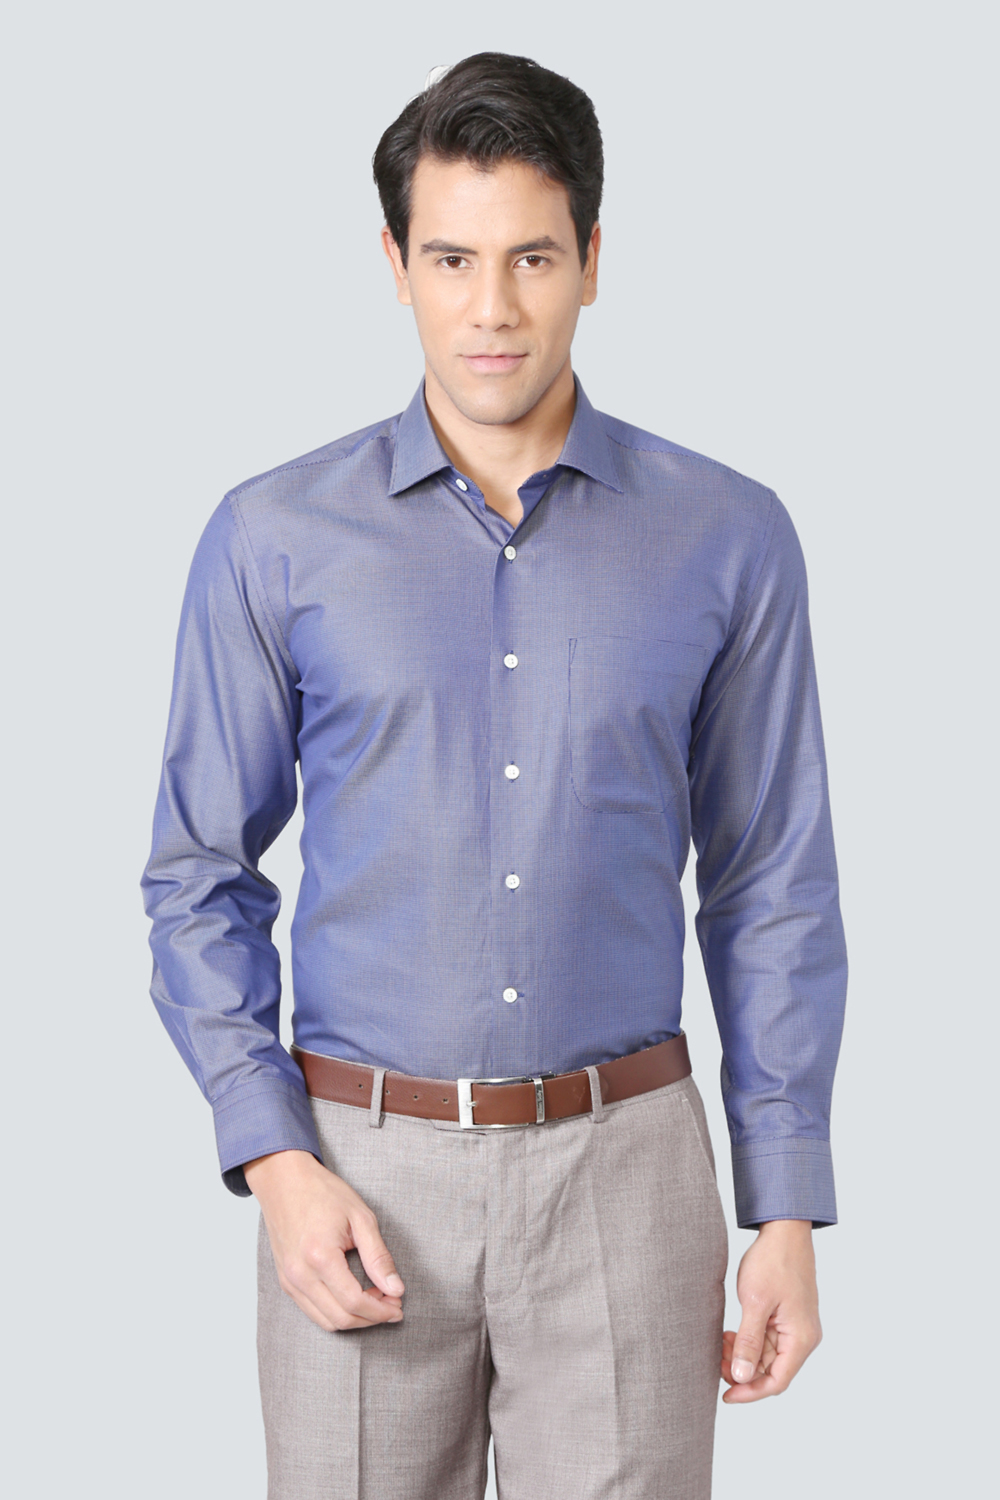 c13217d98a5b6f Louis Philippe Luxure Shirts, Louis Philippe Blue Shirt for Men at  Louisphilippe.com